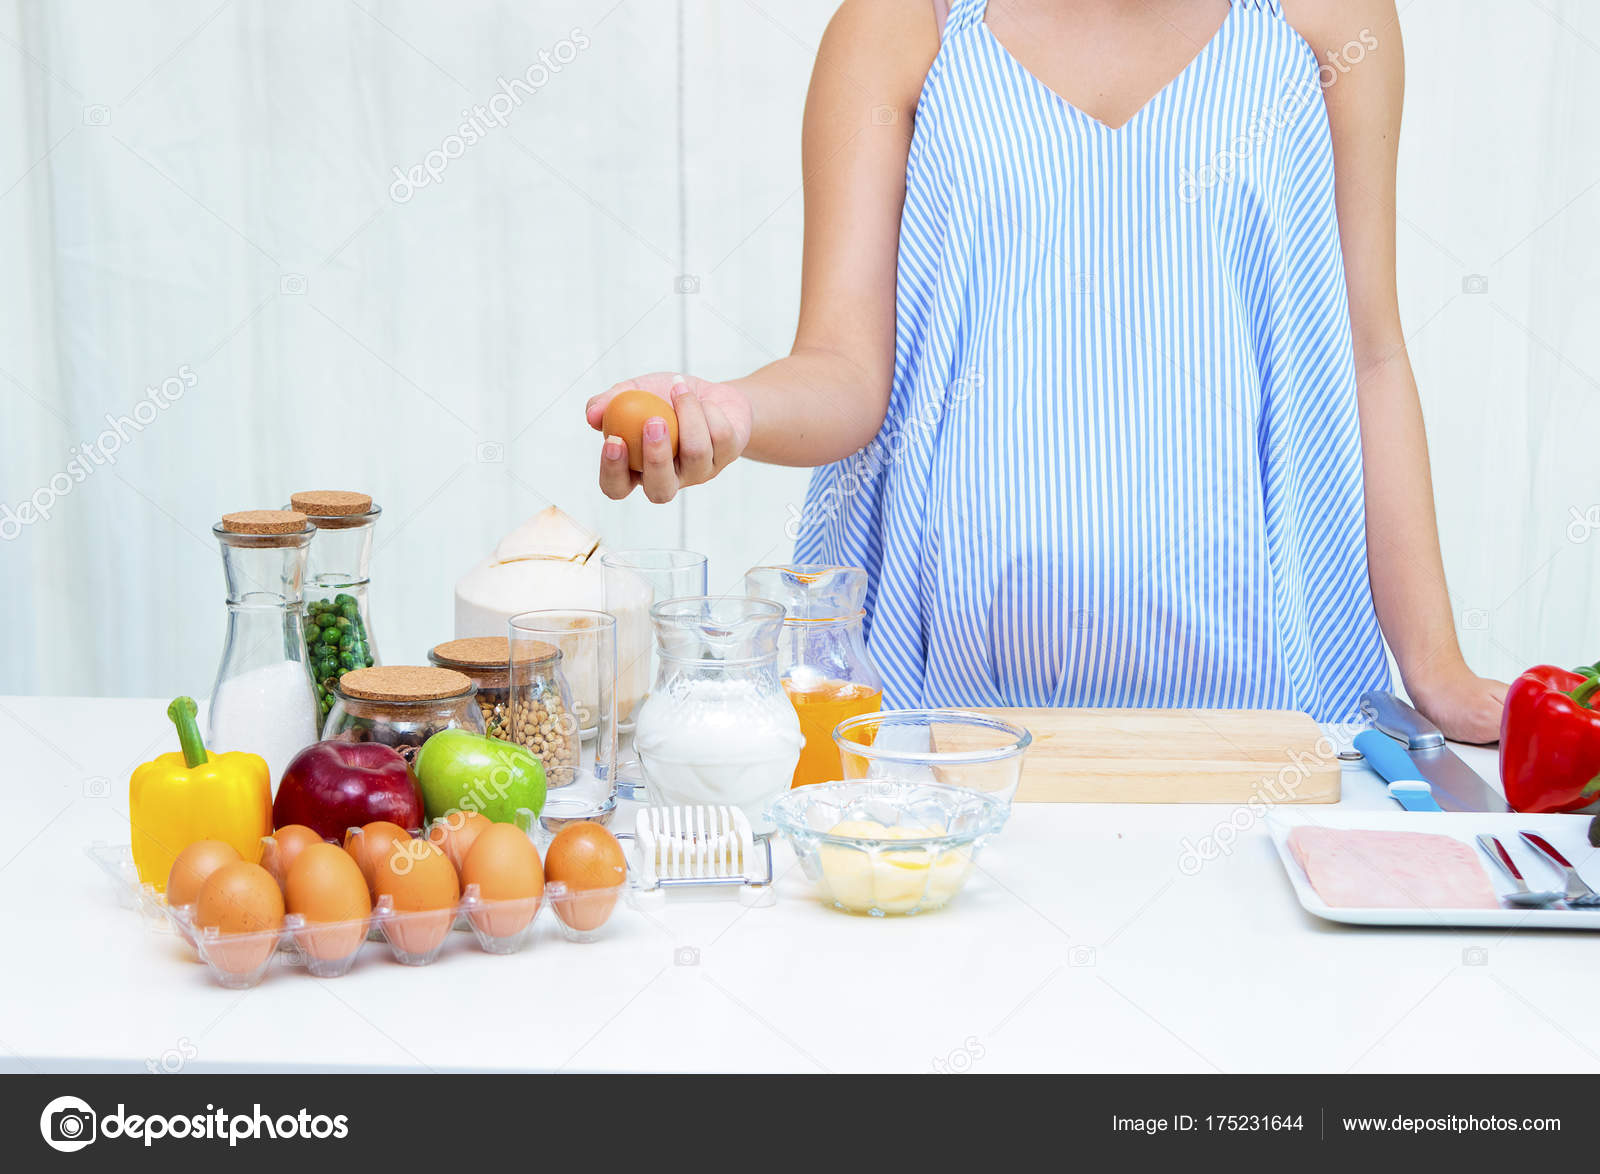 Pregnant woman preparing meal at table in the kitchen,healthy nu ...